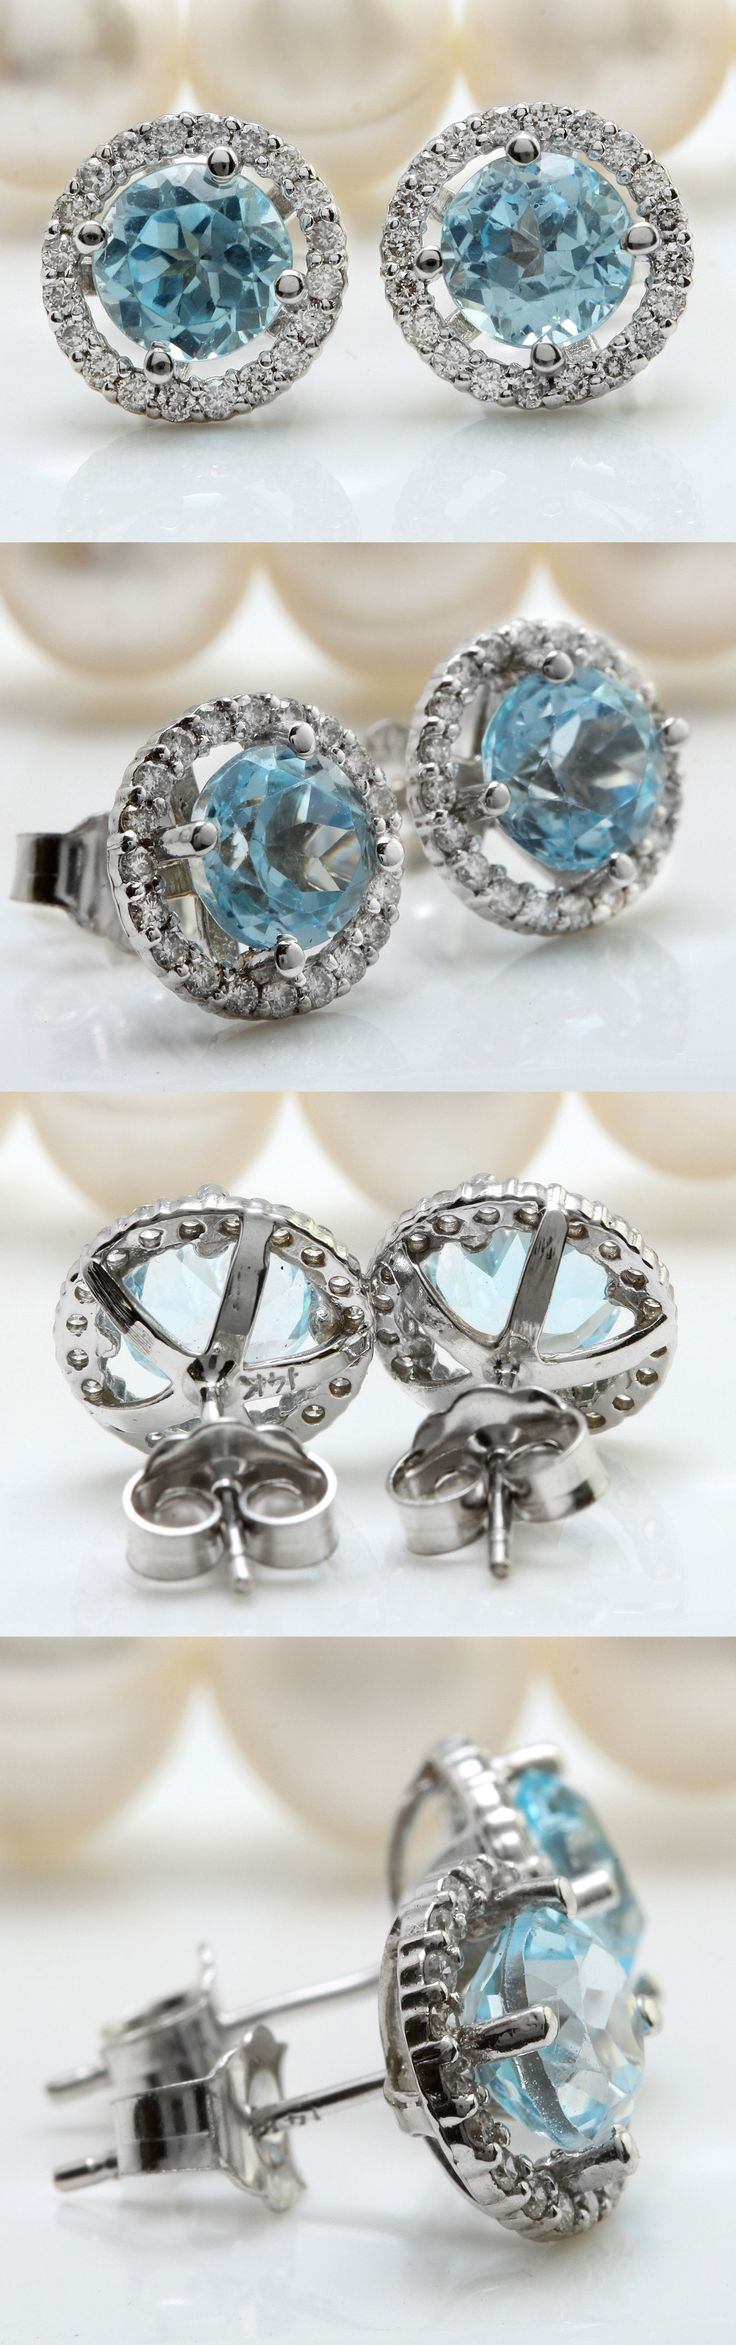 white say stunning engagement blogs sapphire to diamond rings traditional yes bluboho these aquamarine non news natural